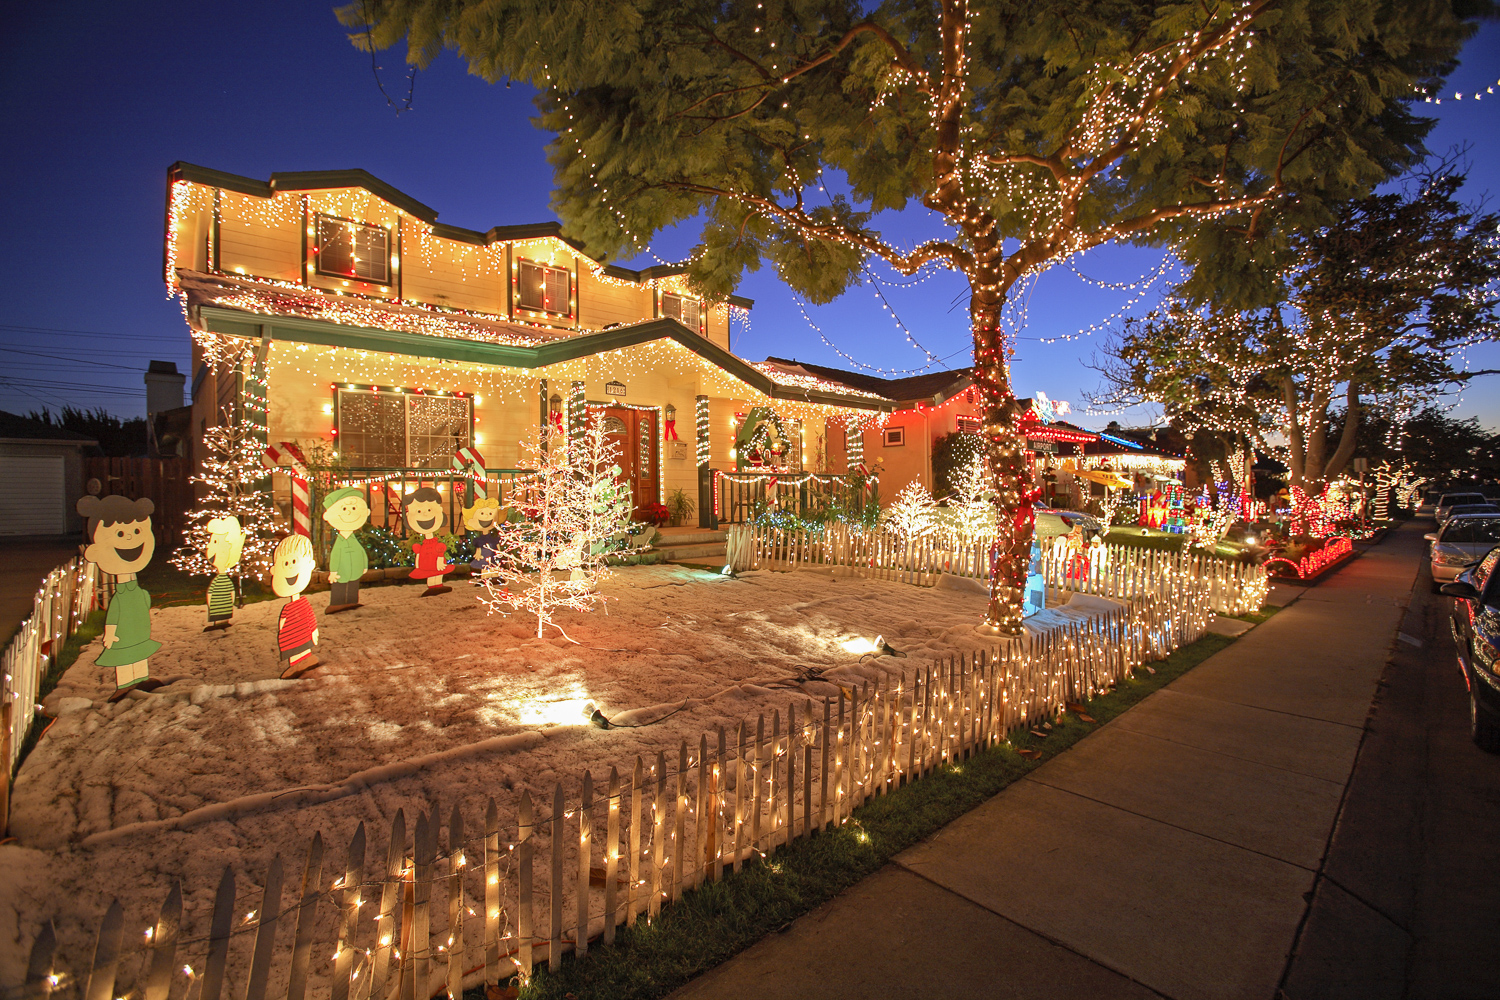 Candy Cane Lane, El Segundo, Los Angeles, California